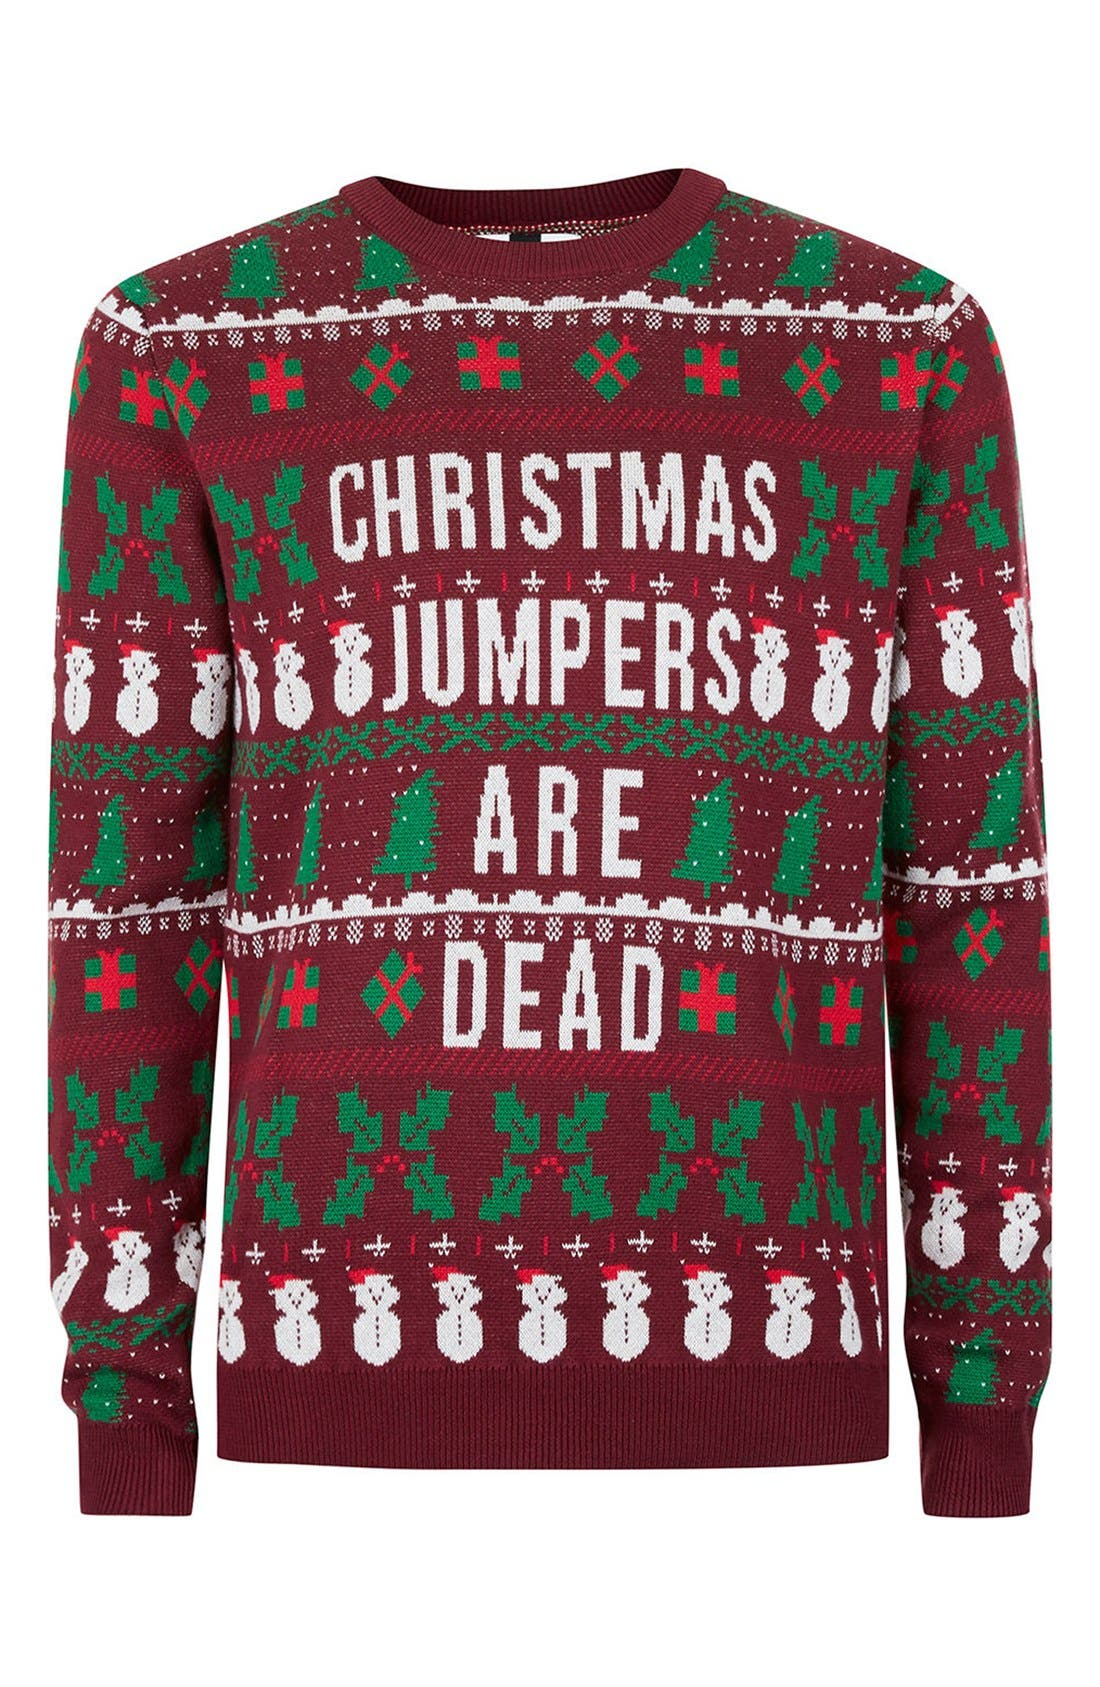 Christmas Jumpers Are Dead Sweater,                             Alternate thumbnail 4, color,                             930